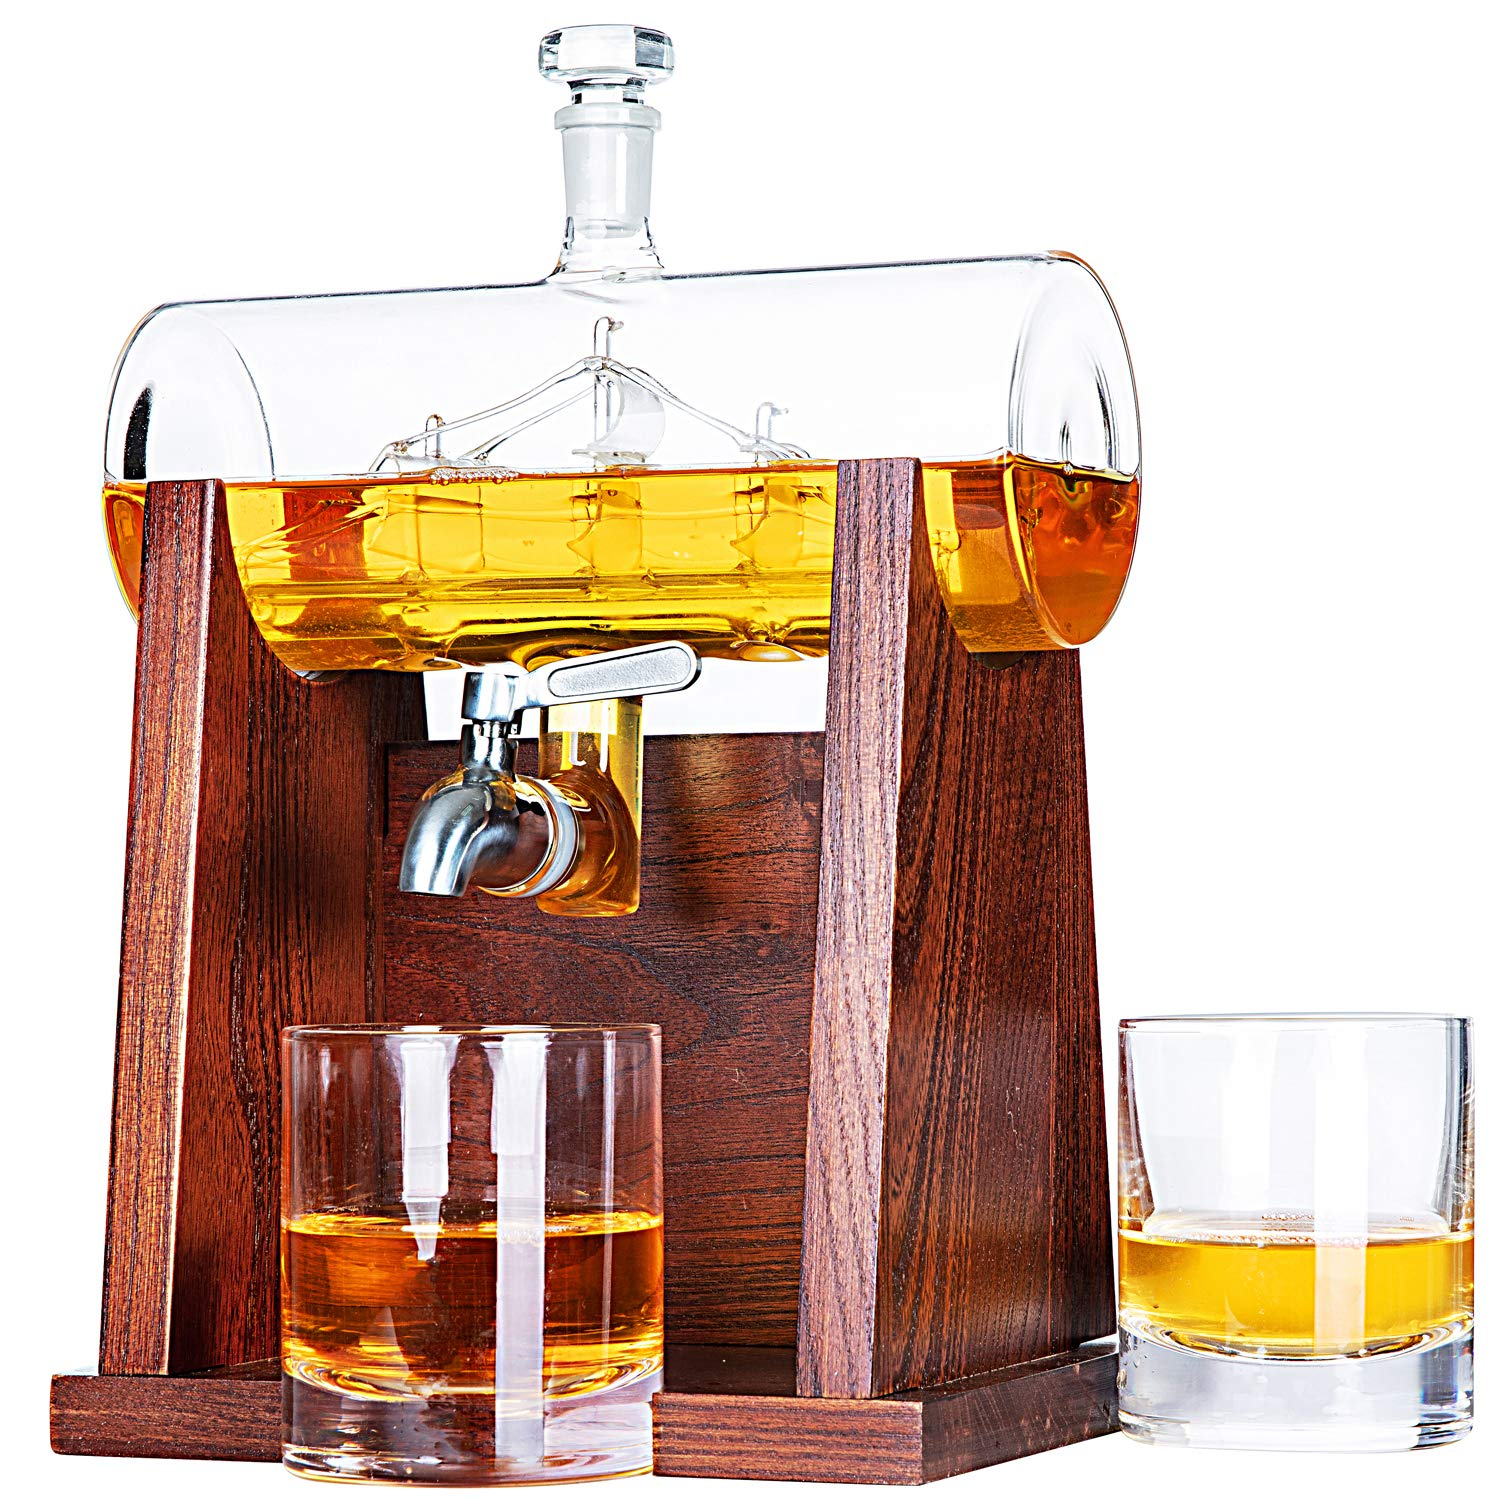 Jillmo Whiskey Decanter Set with 2 Glasses - 1250ml & 42 oz Lead Free Barrel Ship Dispenser with Detachable Wooden Holder Gift for Liquor, Scotch, Bourbon, Vodka, Whisky, Rum & Alcohol by JILLMO